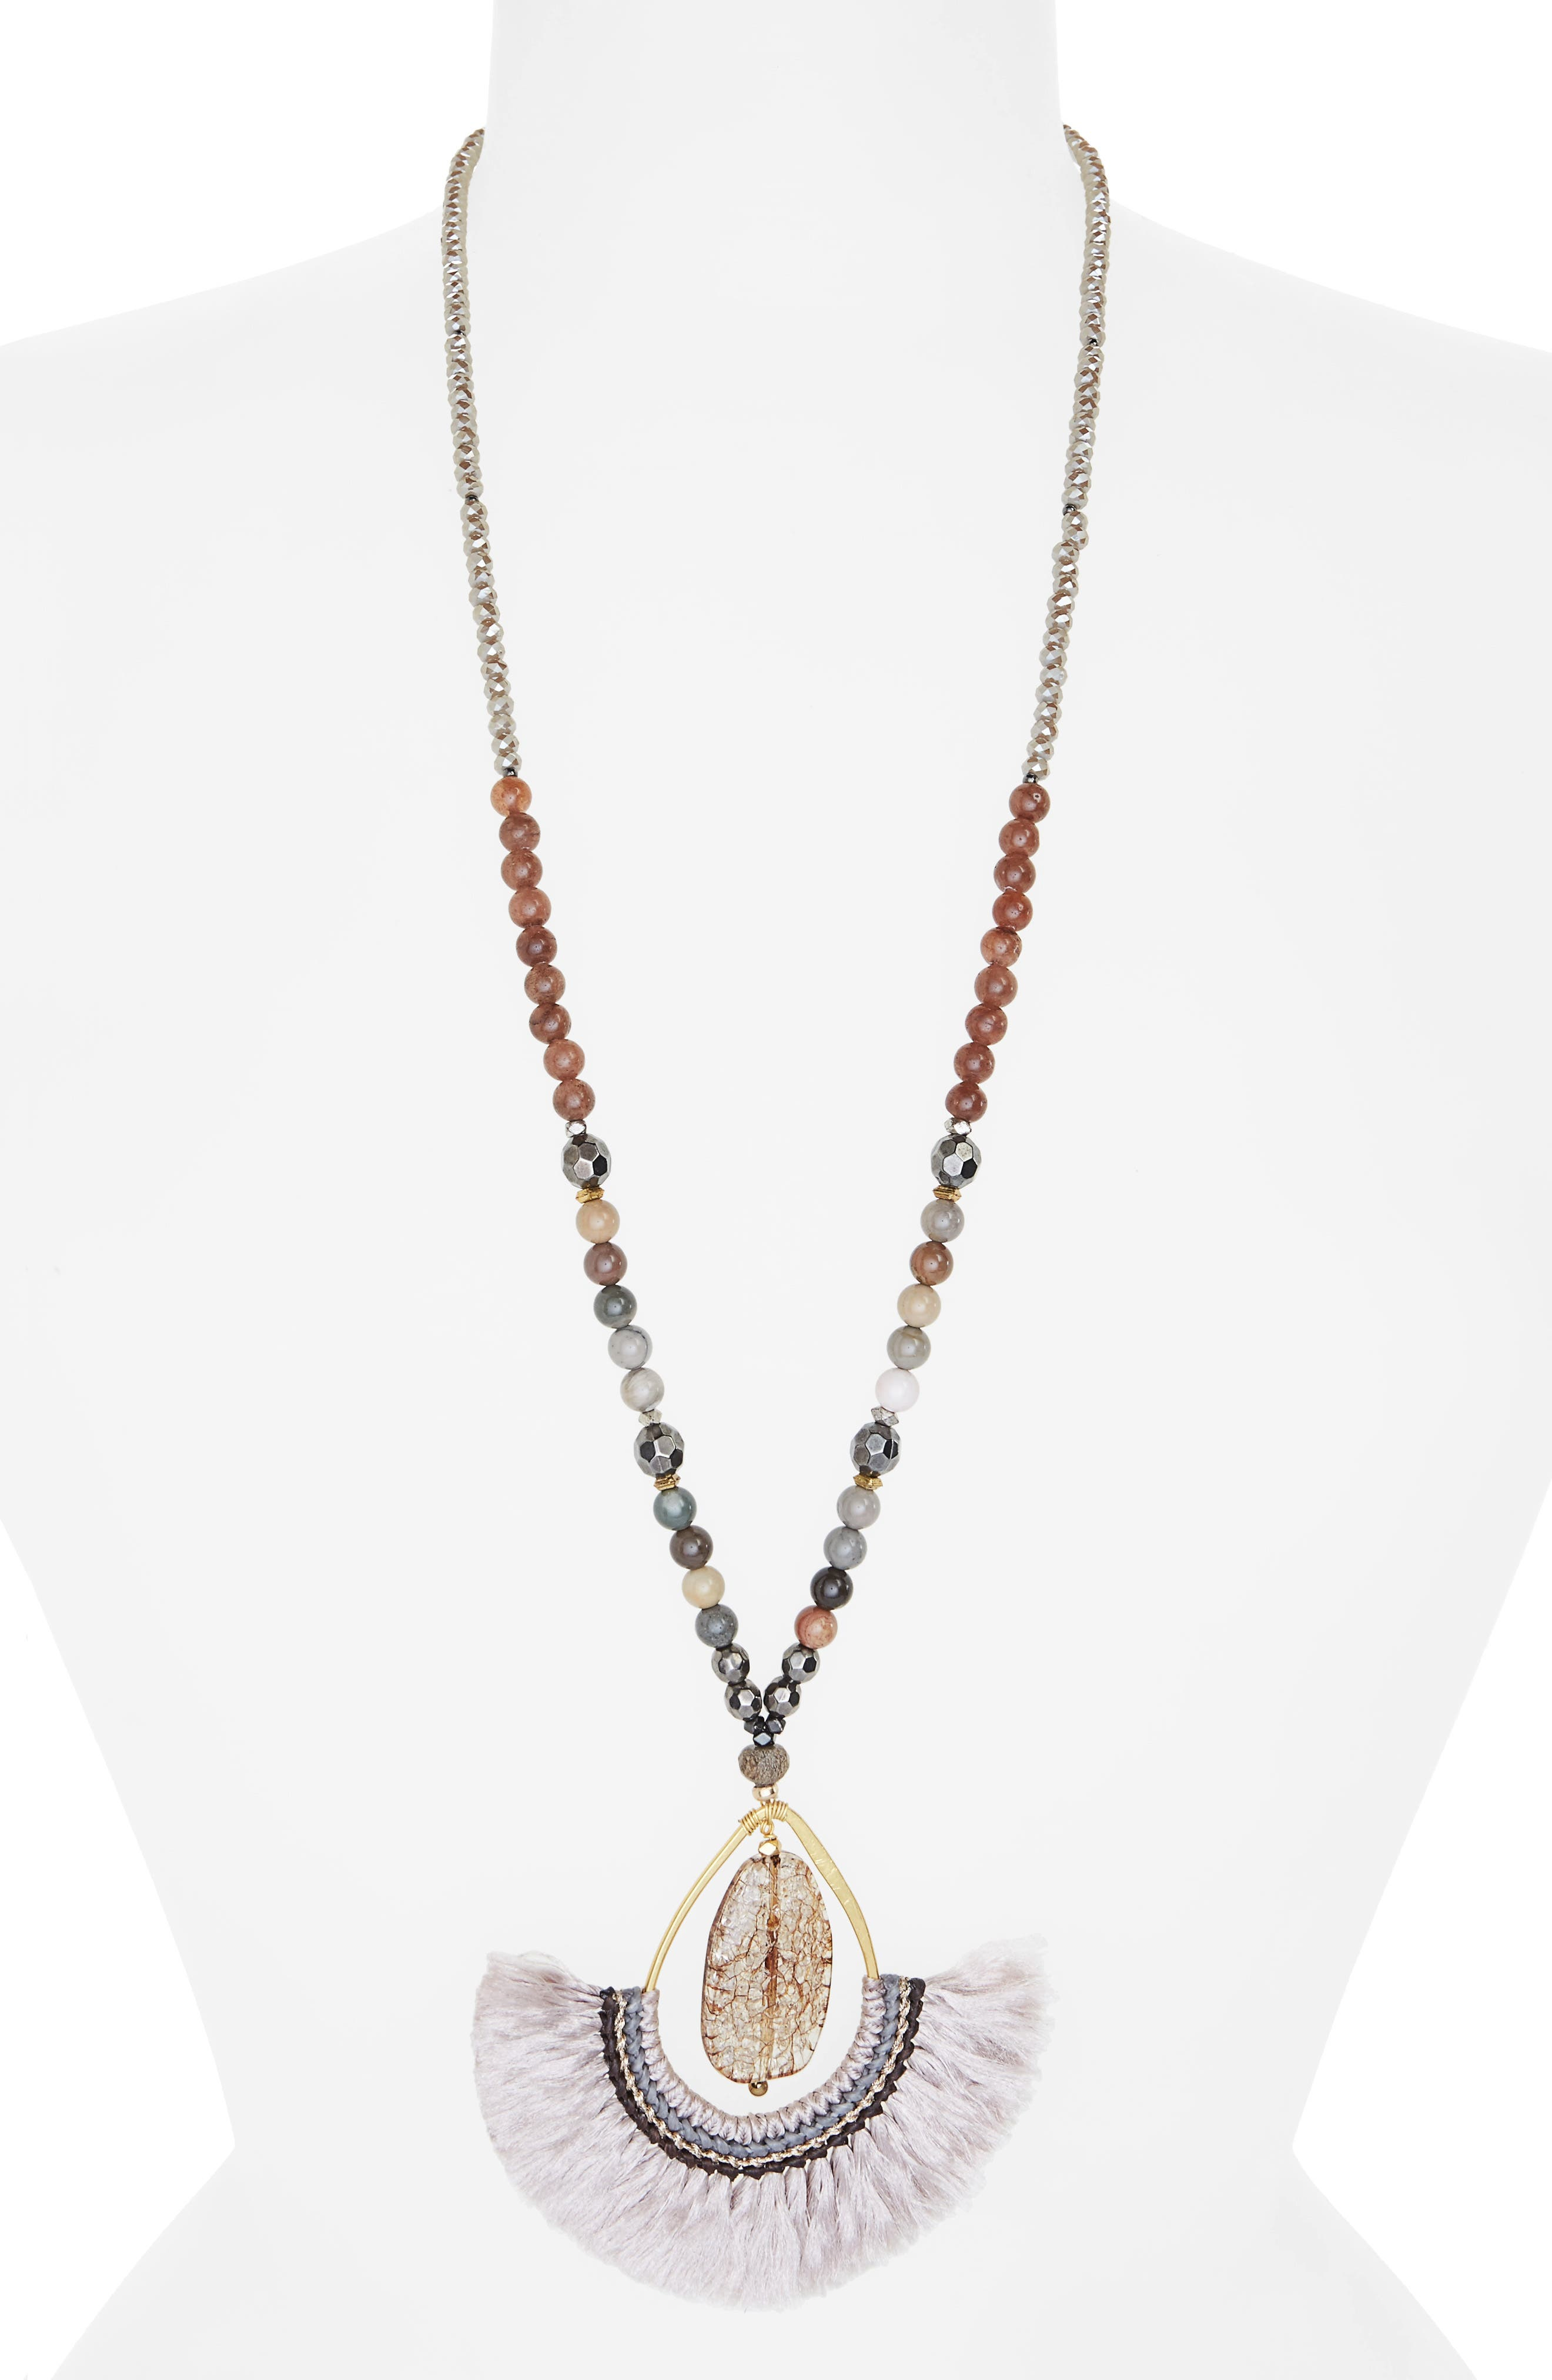 Fringed Agate Teardrop Pendant Necklace,                             Main thumbnail 1, color,                             Nude